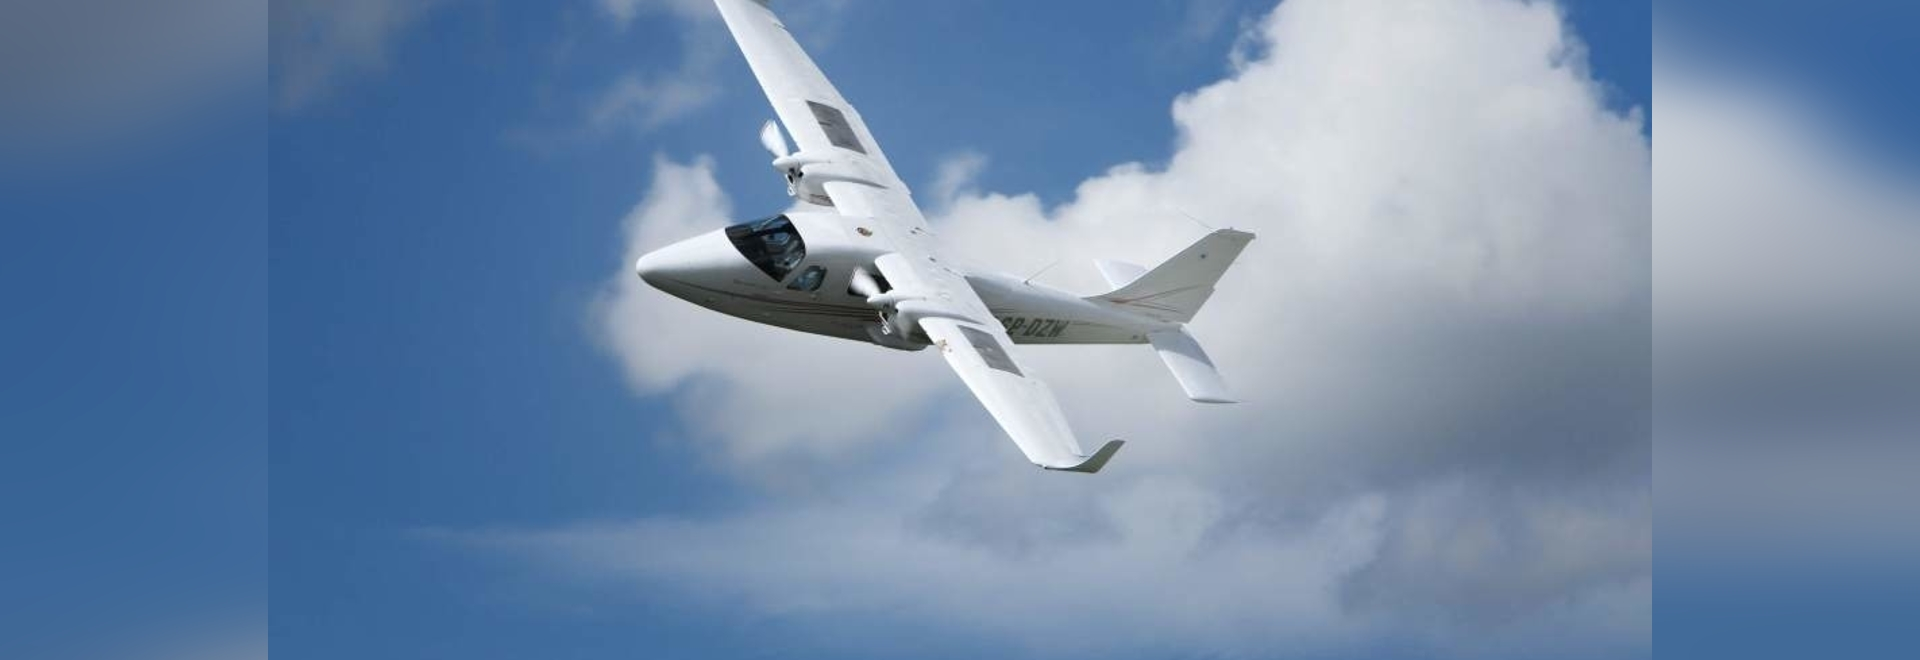 Air Taxi India: India's newest airline to carry 3 passengers per flight